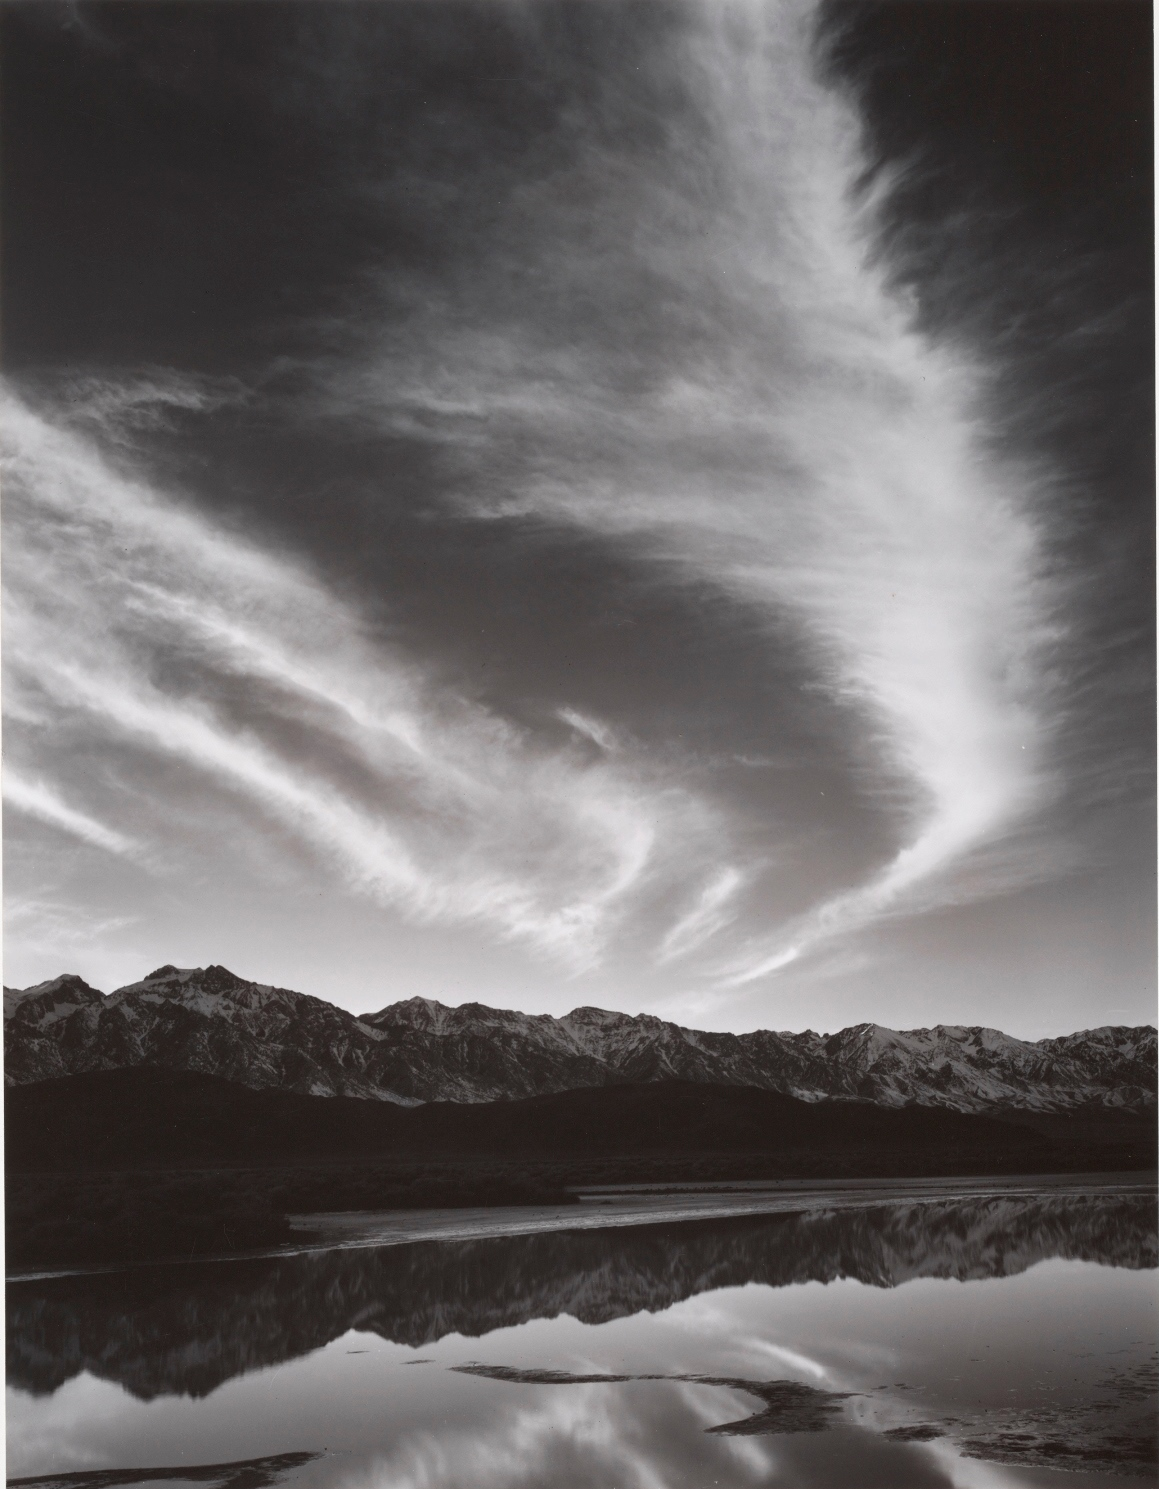 The Sierra Nevada, Winter Evening, from the Owens Valley, Portfolio Four: What Majestic Word, In Memory of Russell Varian (1940-63). Photo by Ansel Adams.